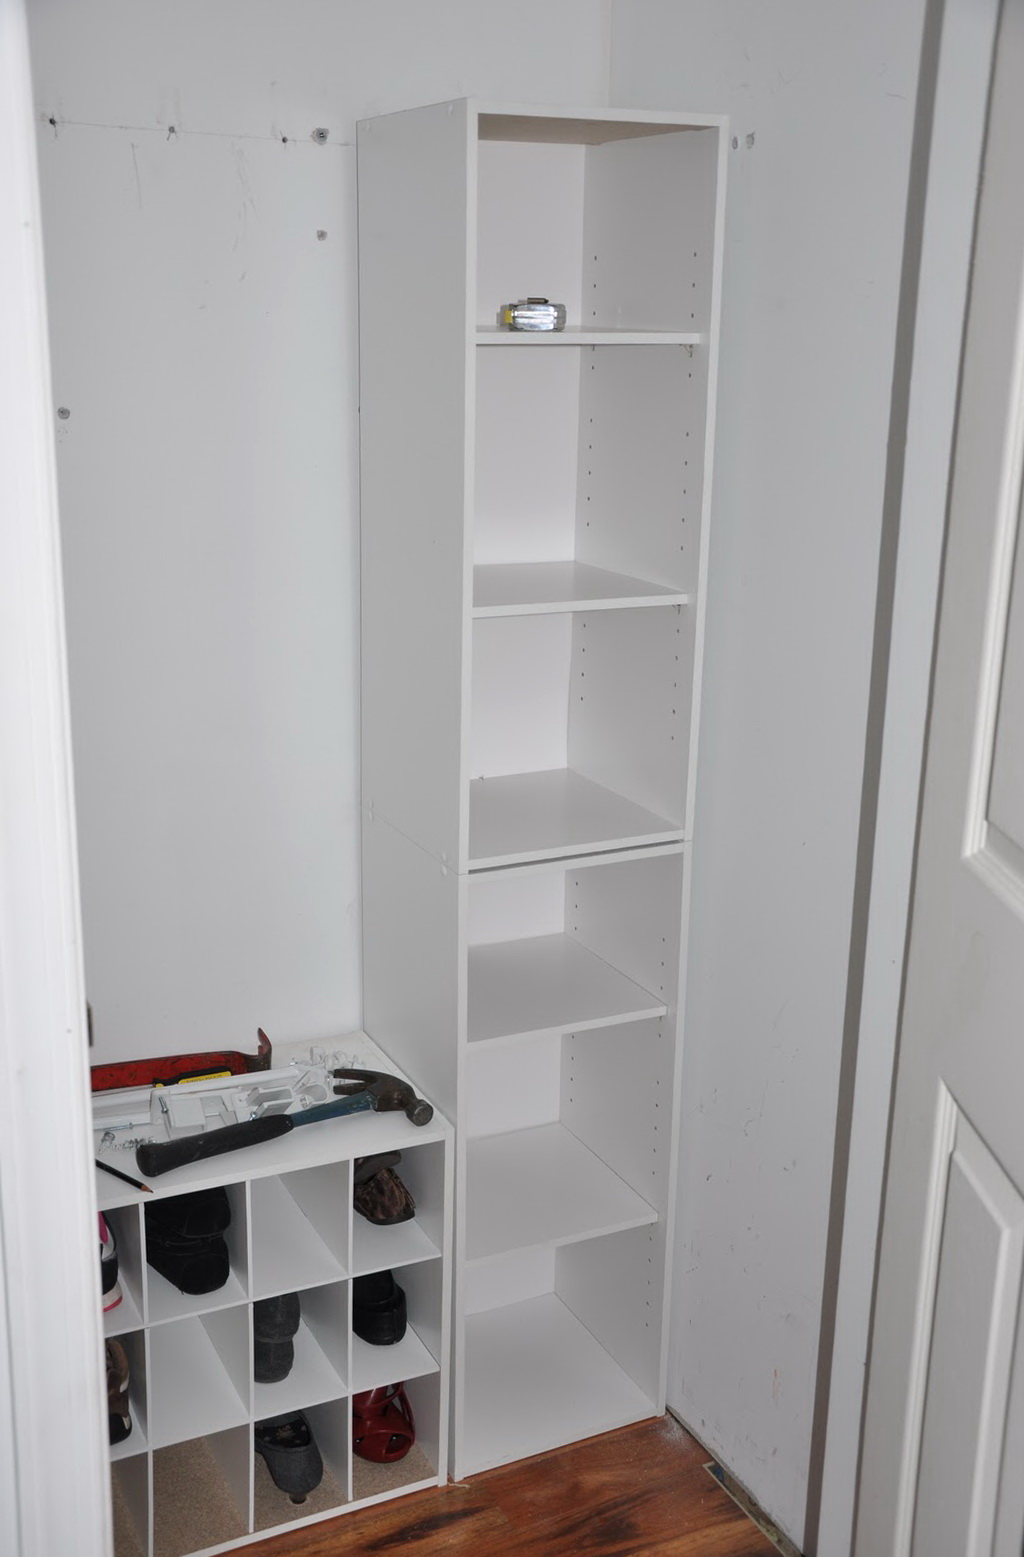 Rubbermaid Closet Helper 4 Shoe Rack Home Design Ideas